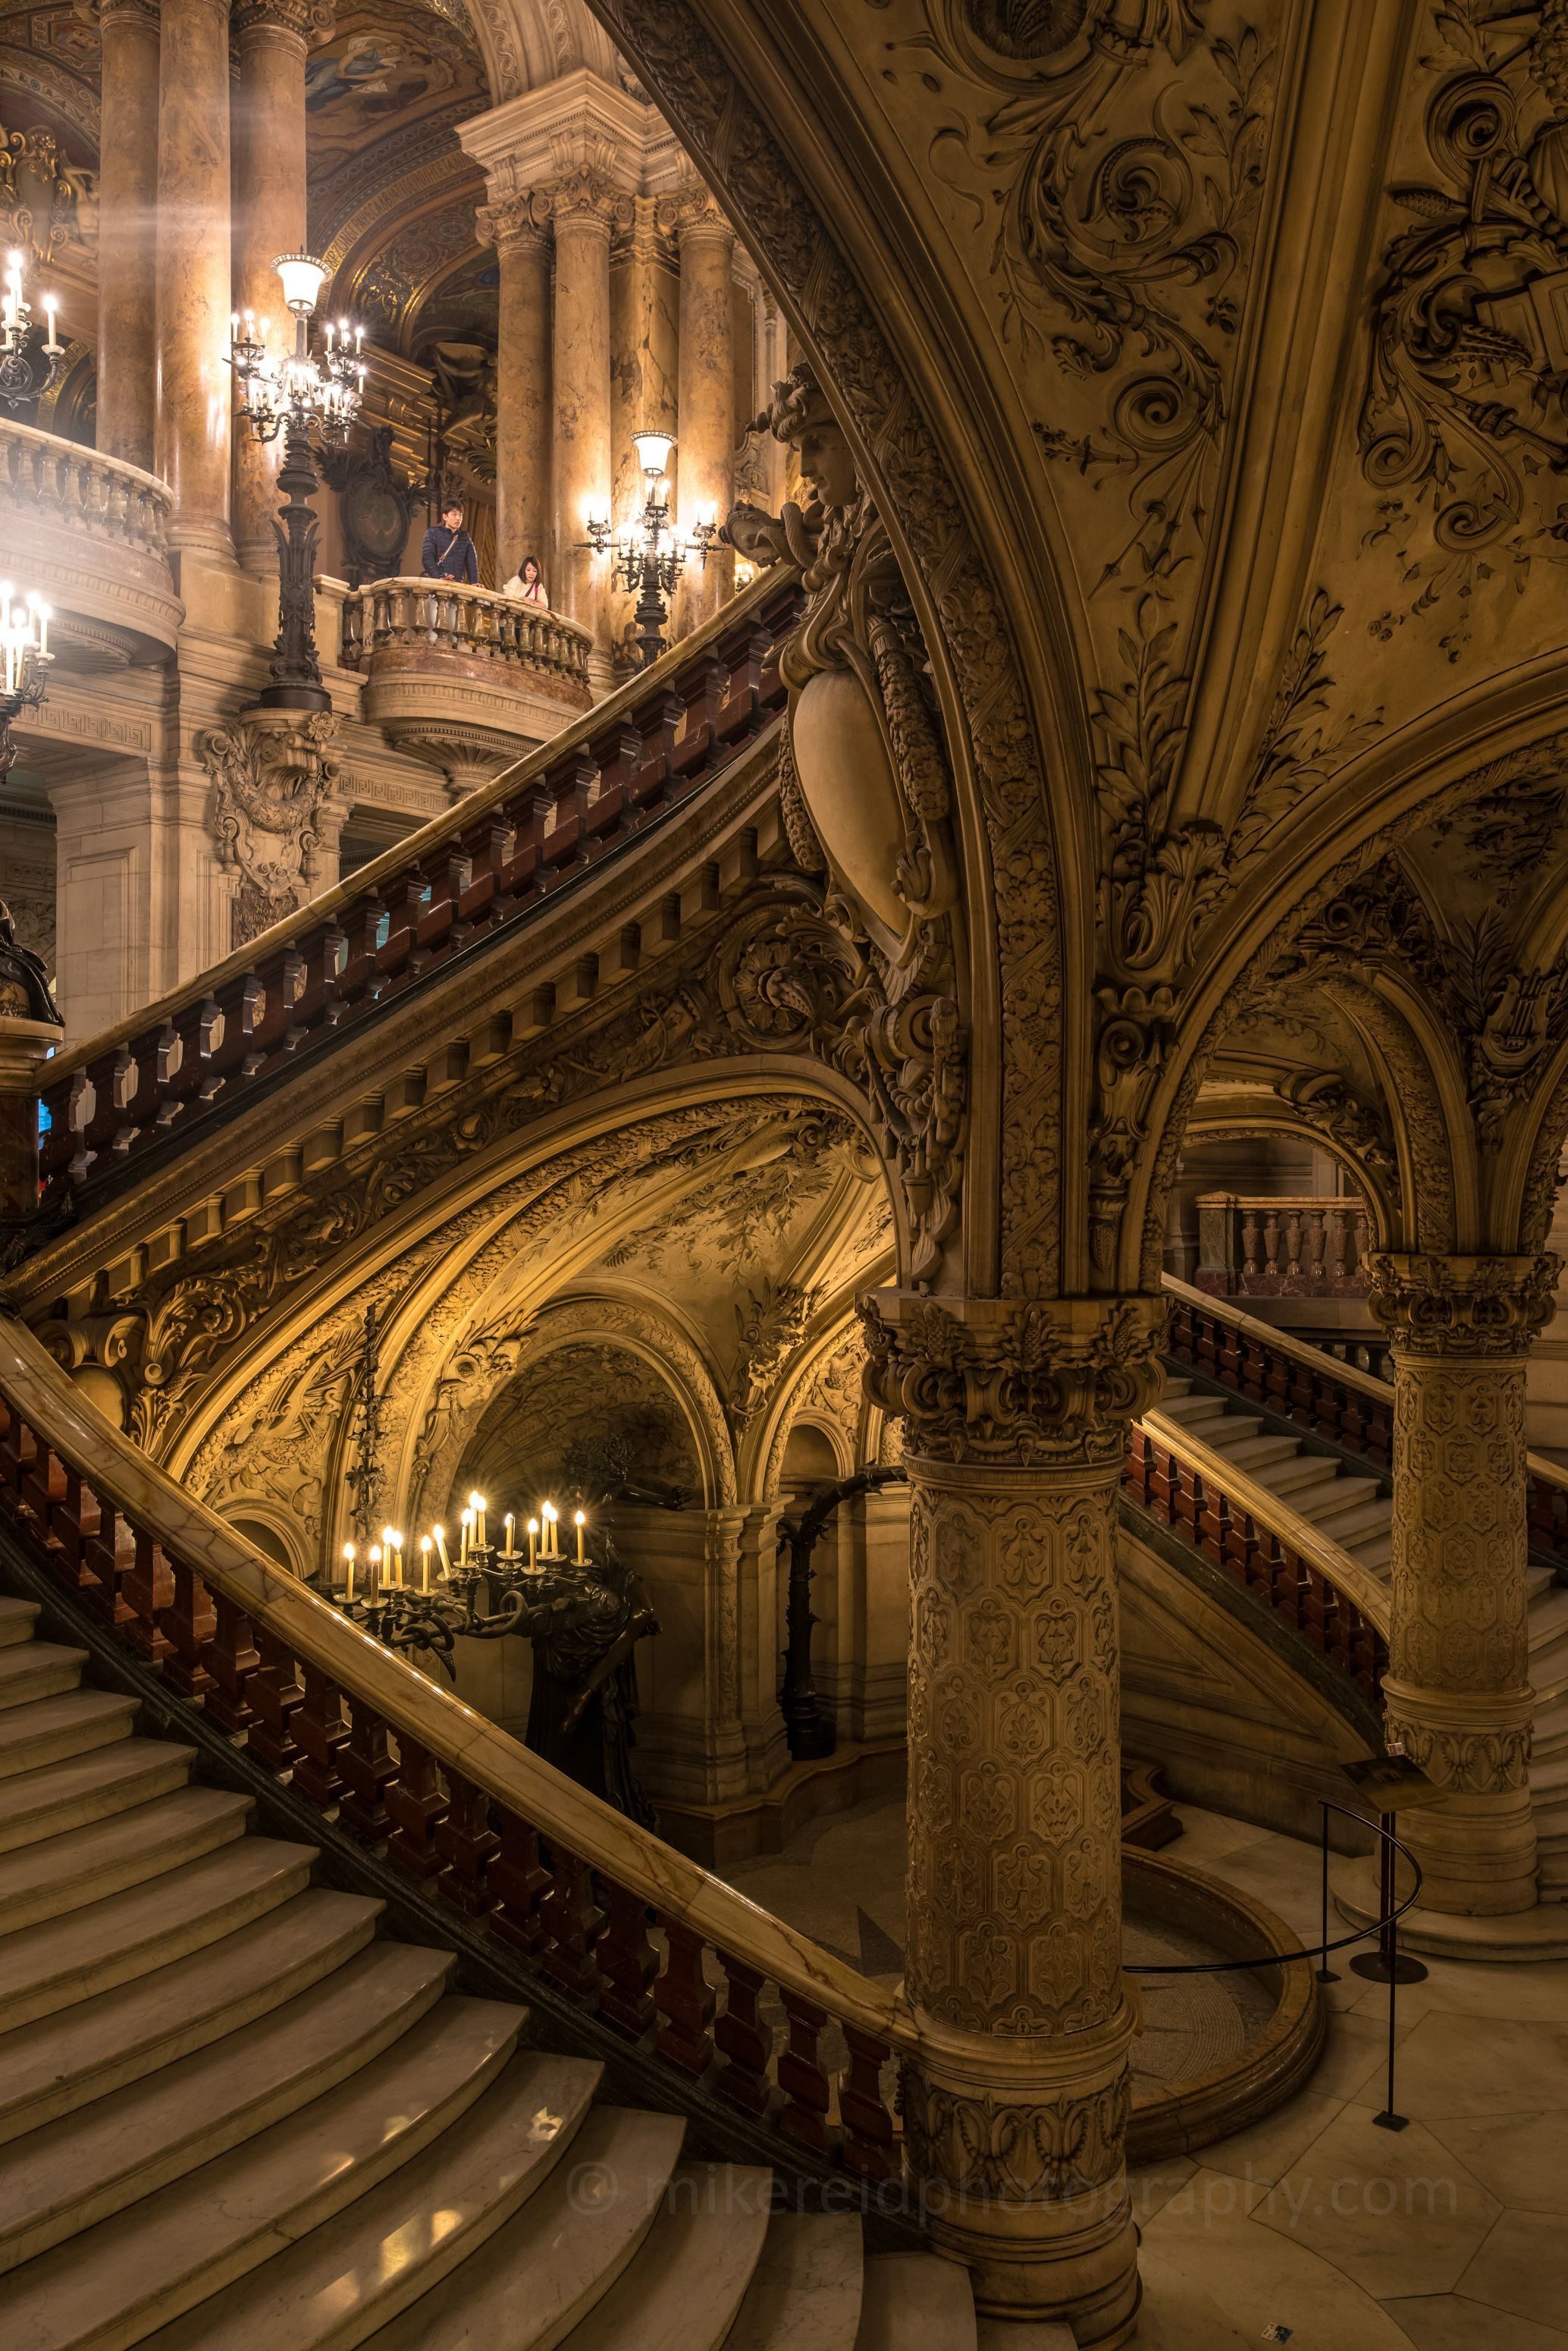 Palais Garnier Has Been Described As The Only One That Is Unquestionably A Masterpiece Baroque Architecture Beautiful Architecture Architecture